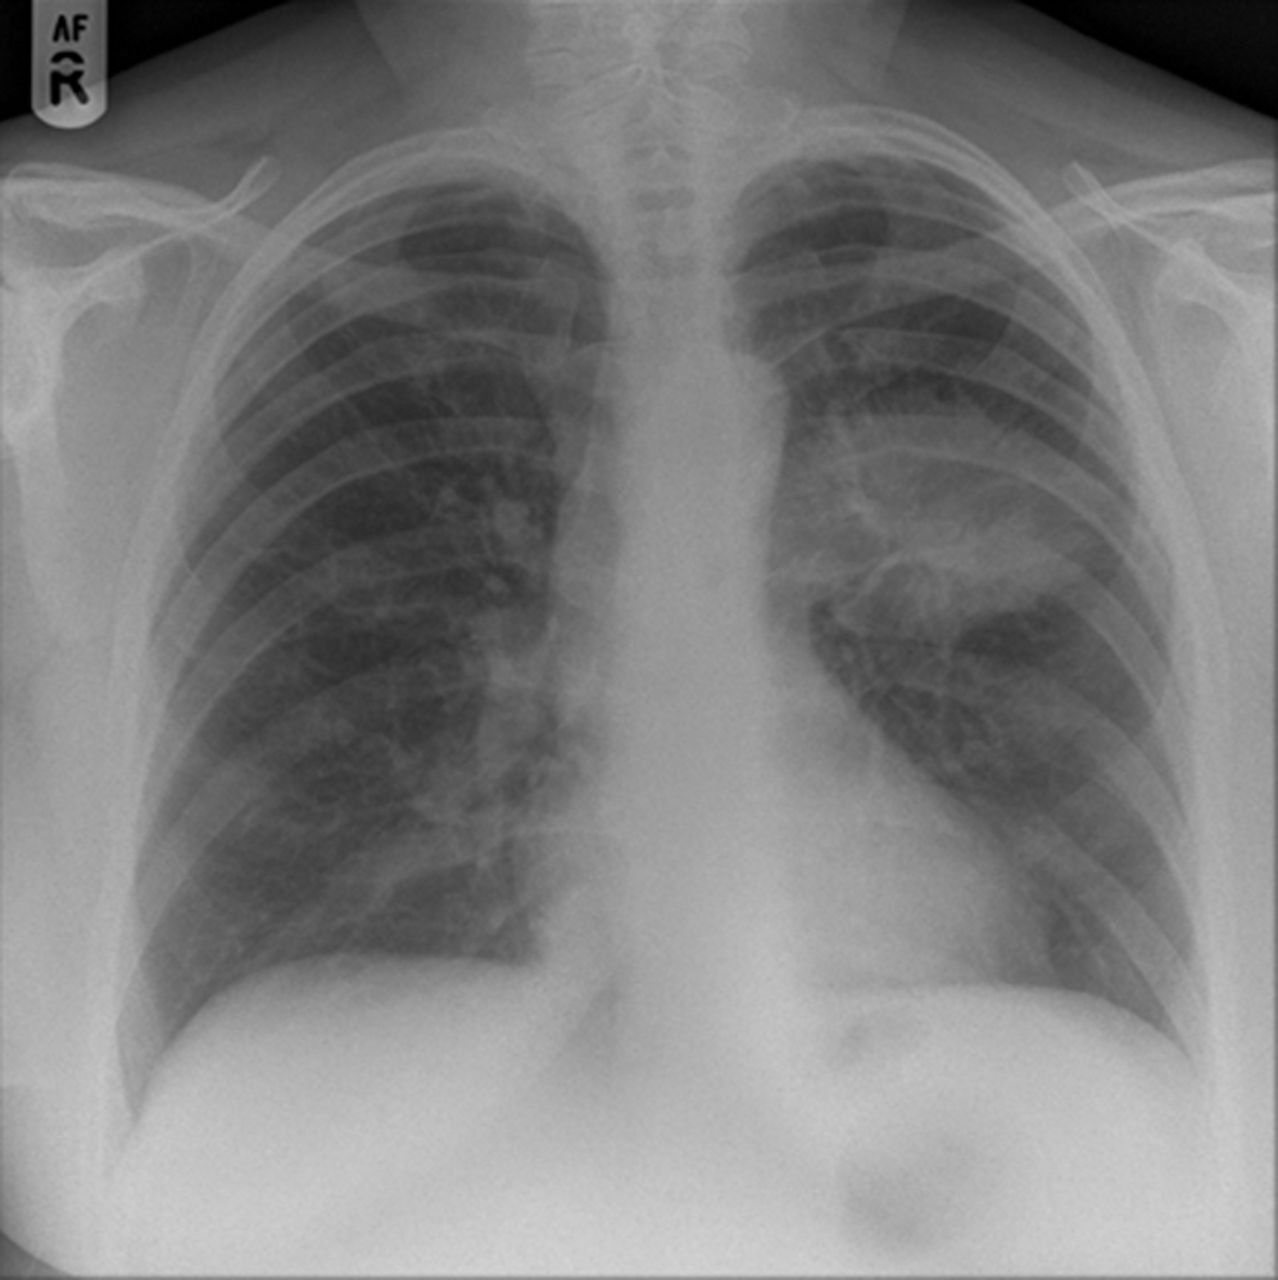 management of breathlessness in lung cancer Lung cancer pleural effusion the management of breathlessness includes determining the need for emergency admission by assessing the person's blood pressure.